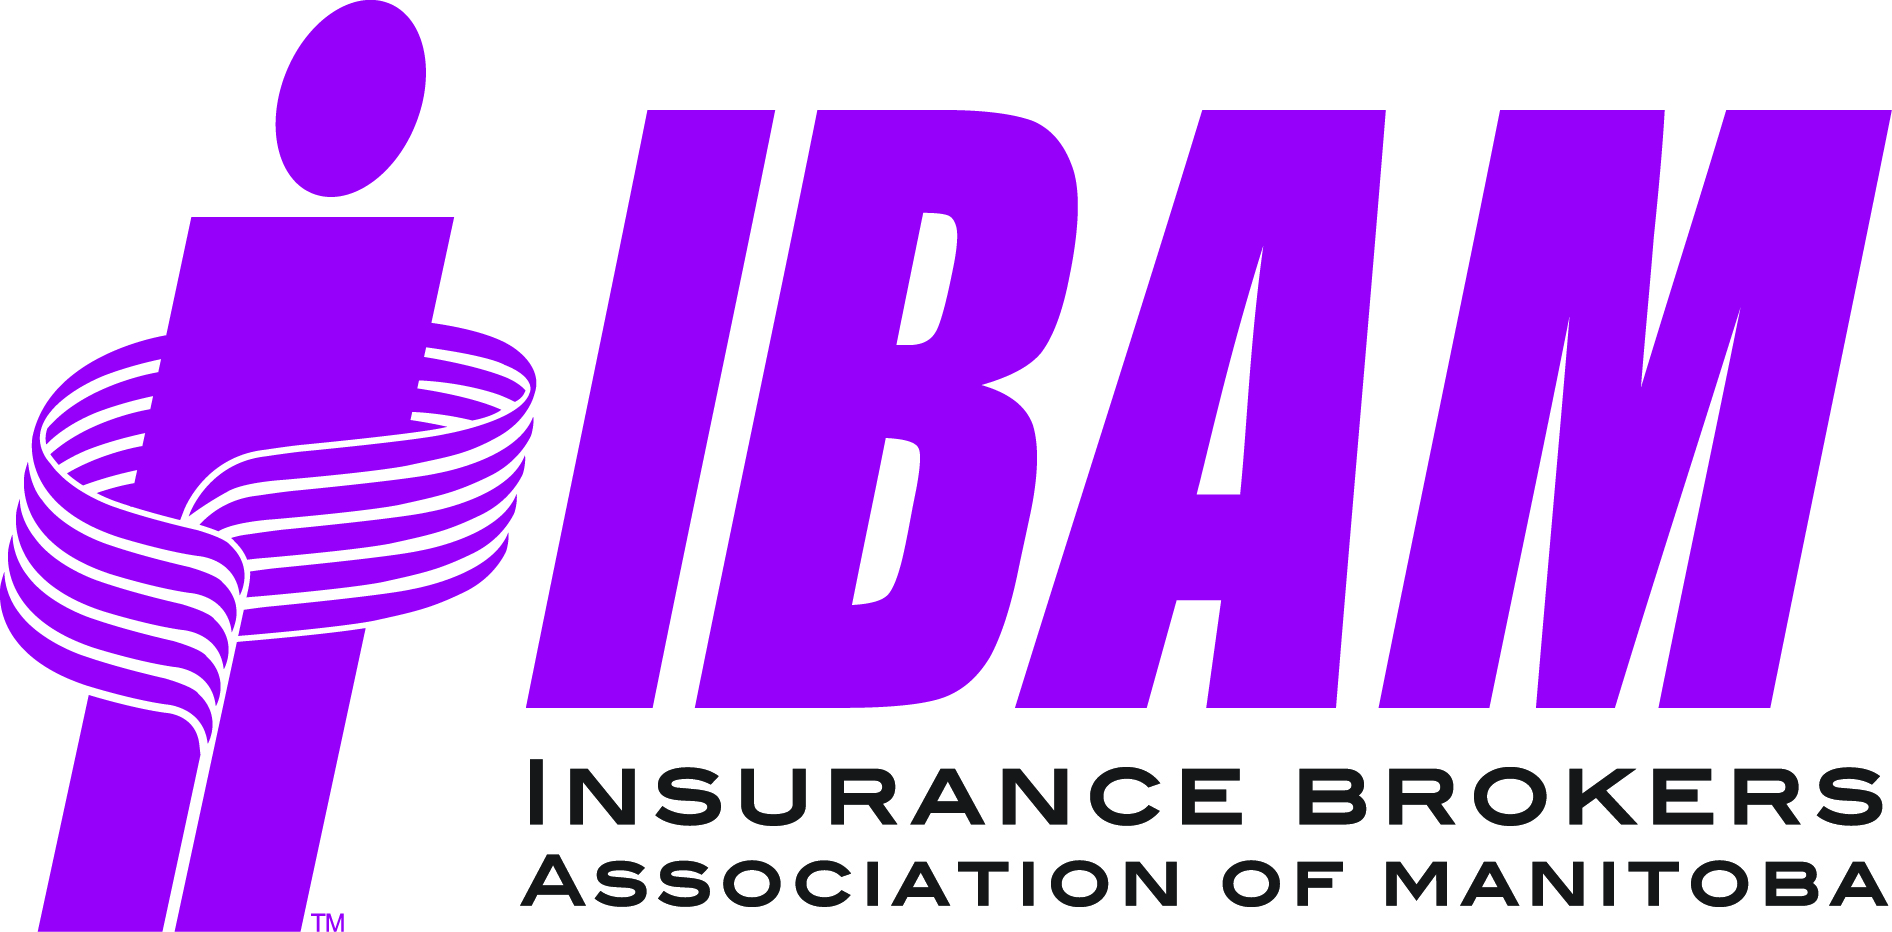 british insurance brokers association - HD 1892×932